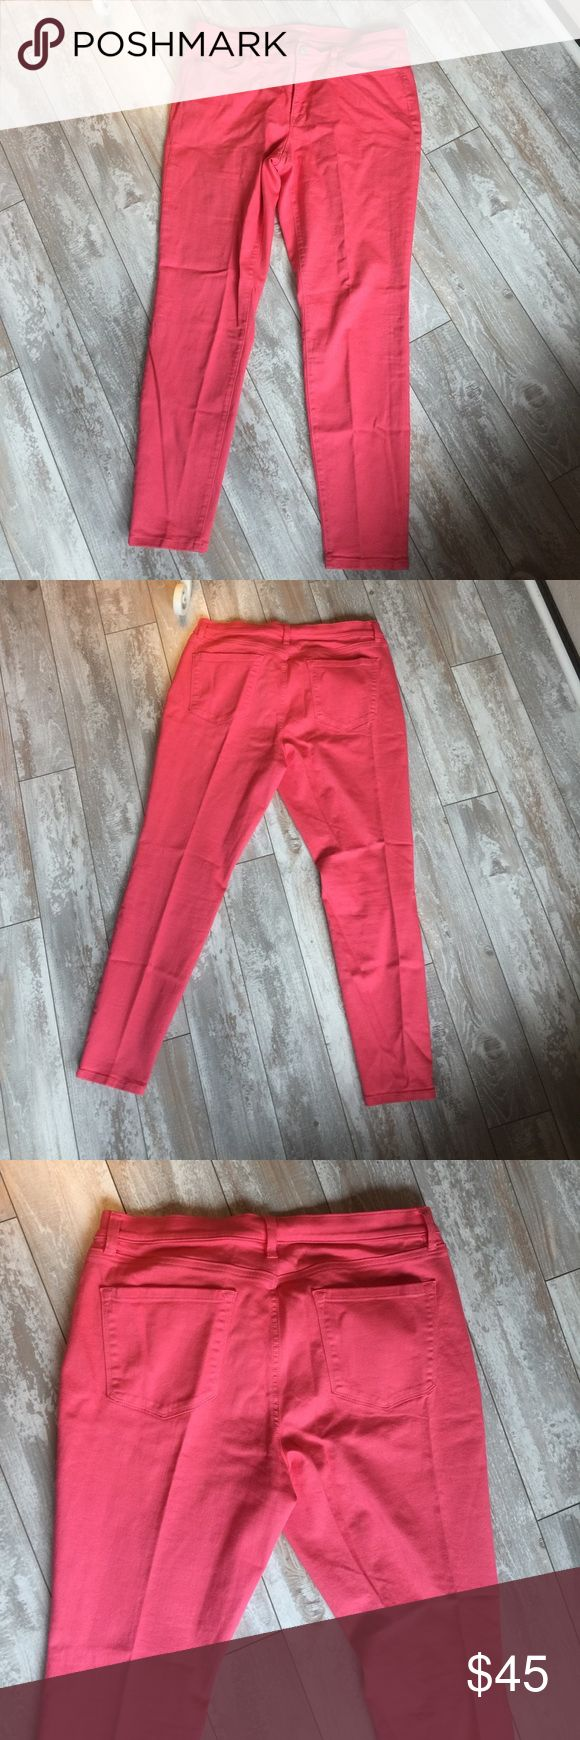 "LOFT Orange ""Super Skinny"" Jeans.17350 Orange jeans have a 29"" inseam. Ankle measurement is 11"" in circumference. Waistband is 37"" in circumference x 1.5"" wide, 5 belt loops, 4"" long metal zipper and metal button front closure. Hip measurement is 44"" around. 5"" deep x 6.5"" wide right and left side pockets and 2.5"" x 2.5"" watch pocket in right side pocket. 6.5"" wide x 6.5"" deep left and right rear patch pockets. 91% cotton, 7% polyester, 2% spandex. Machine washable and dryable. NWOT. LOFT…"